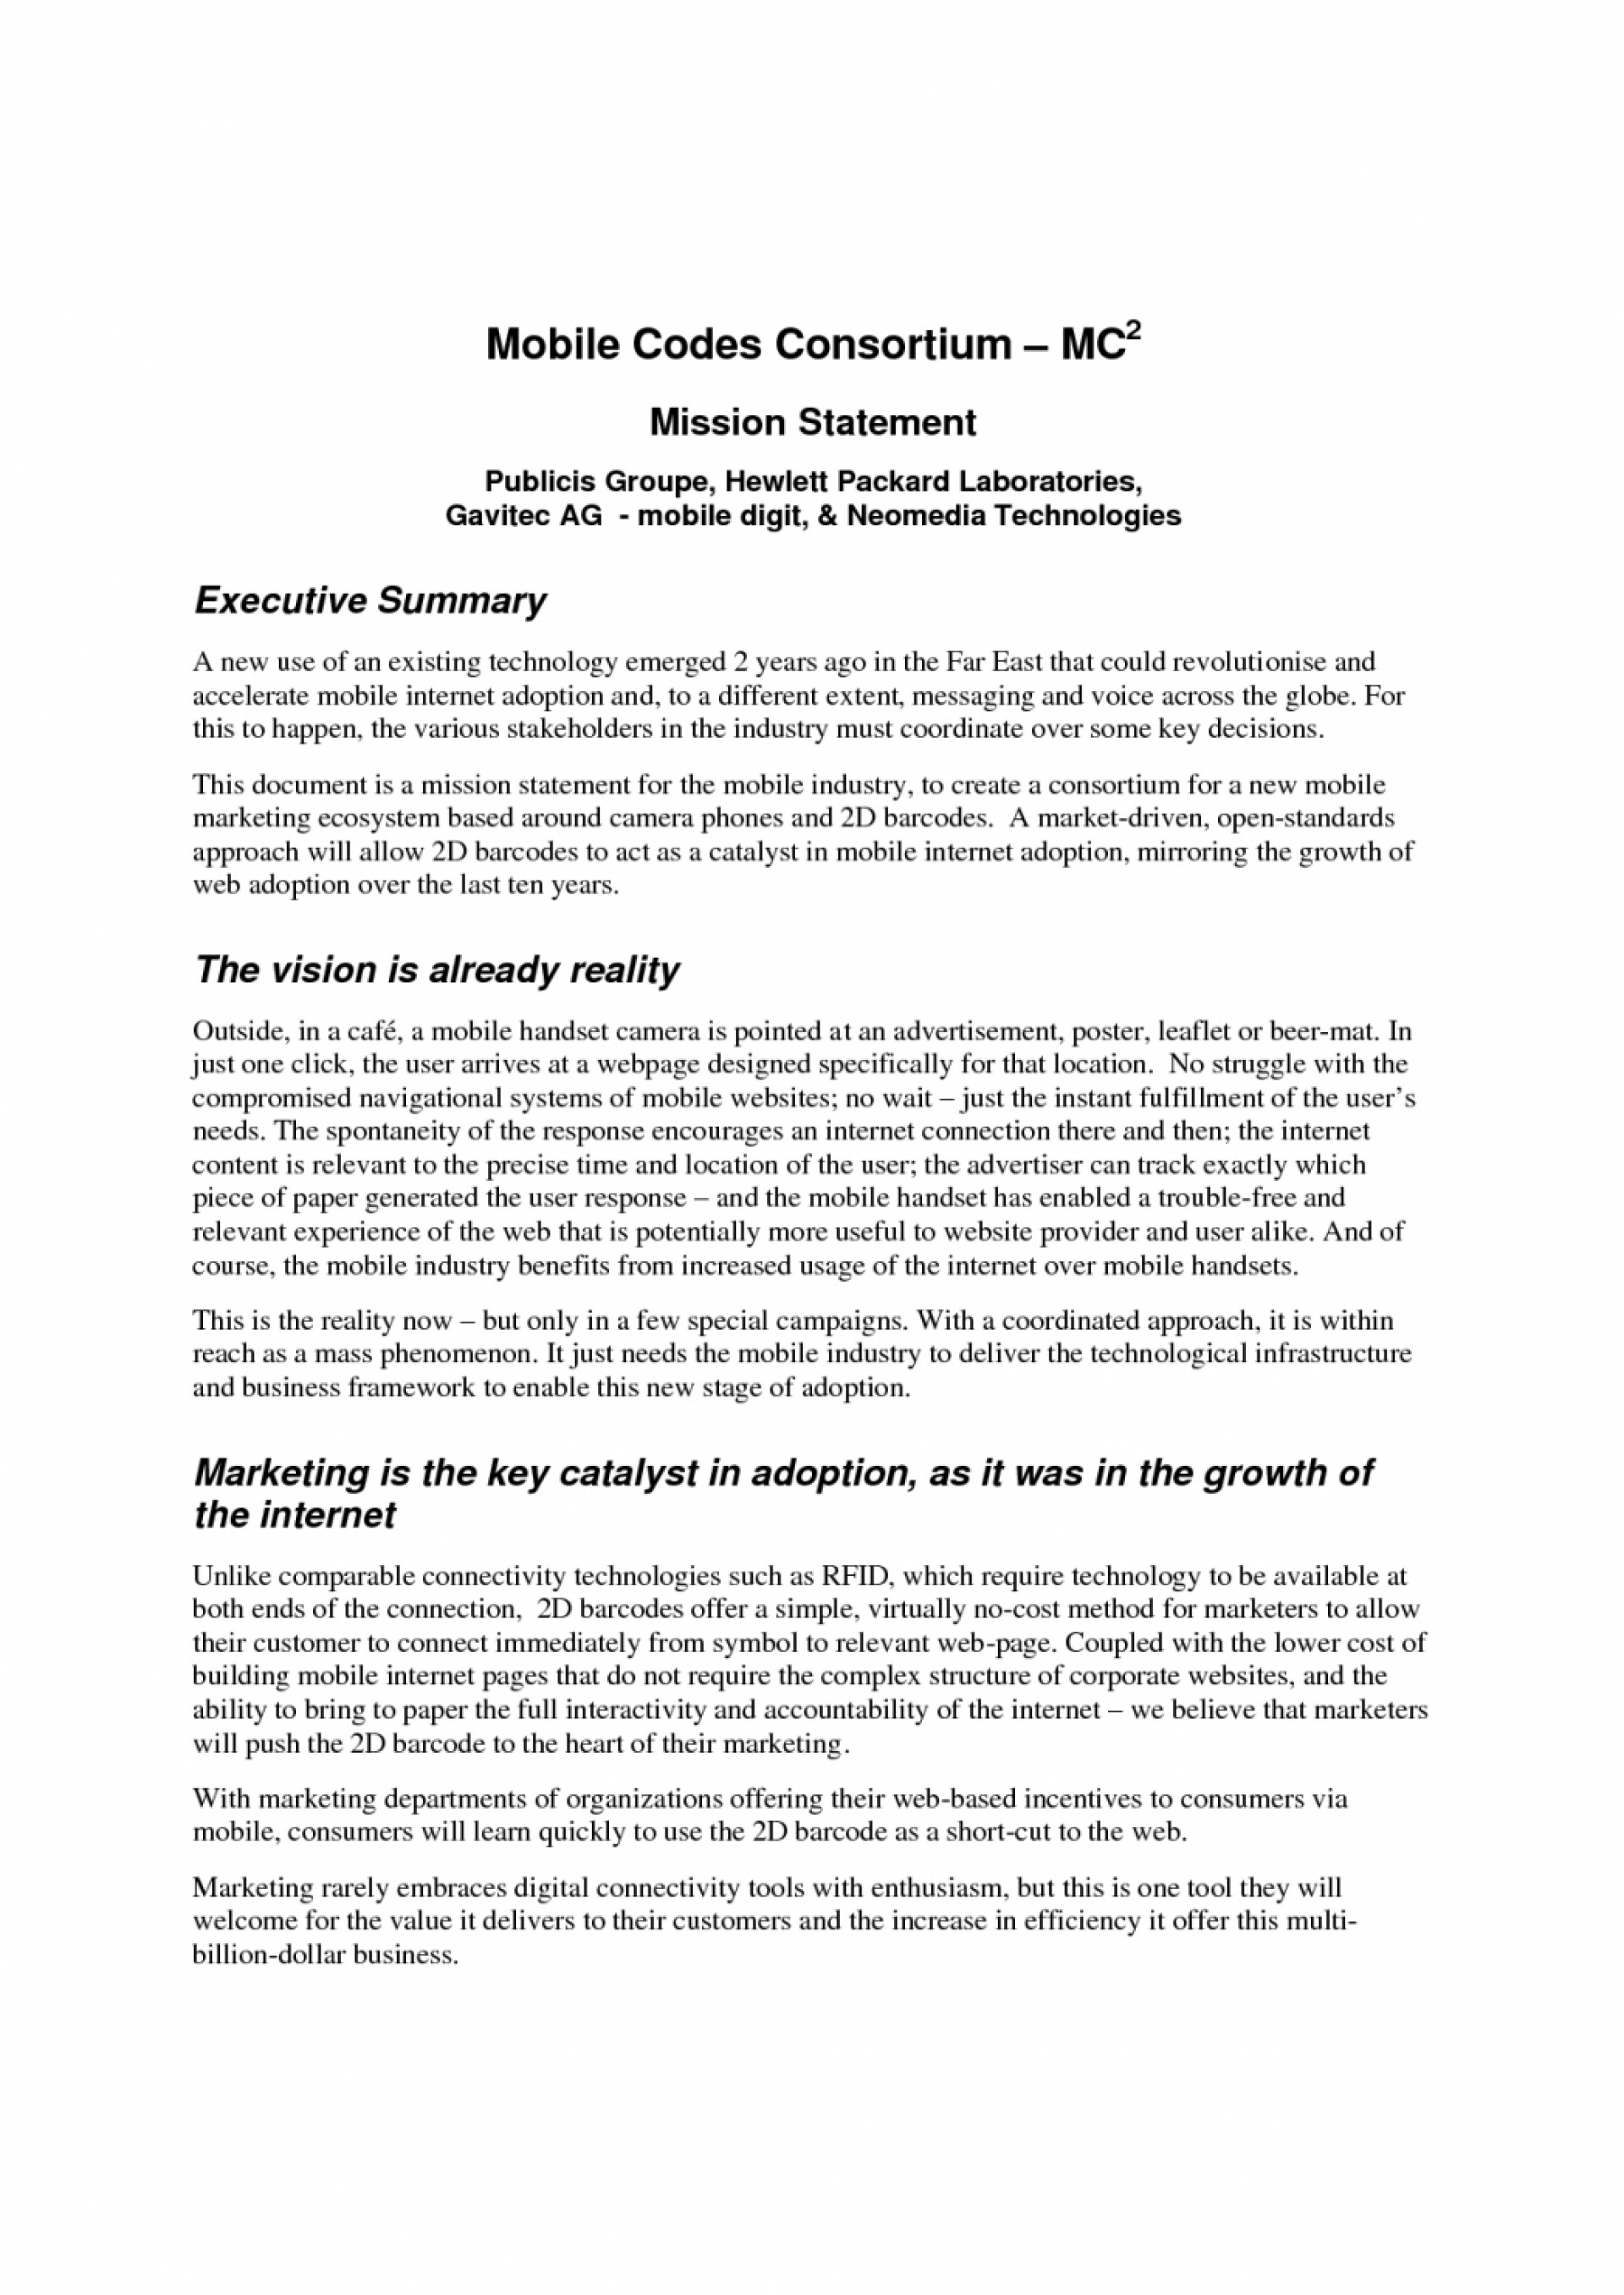 006 College Essay Writing Service Reviews Business Format Writers For Hire Disney Mission Statement Template H1t Professional Entrance Application Best Pay 1048x1481 Formidable 1920